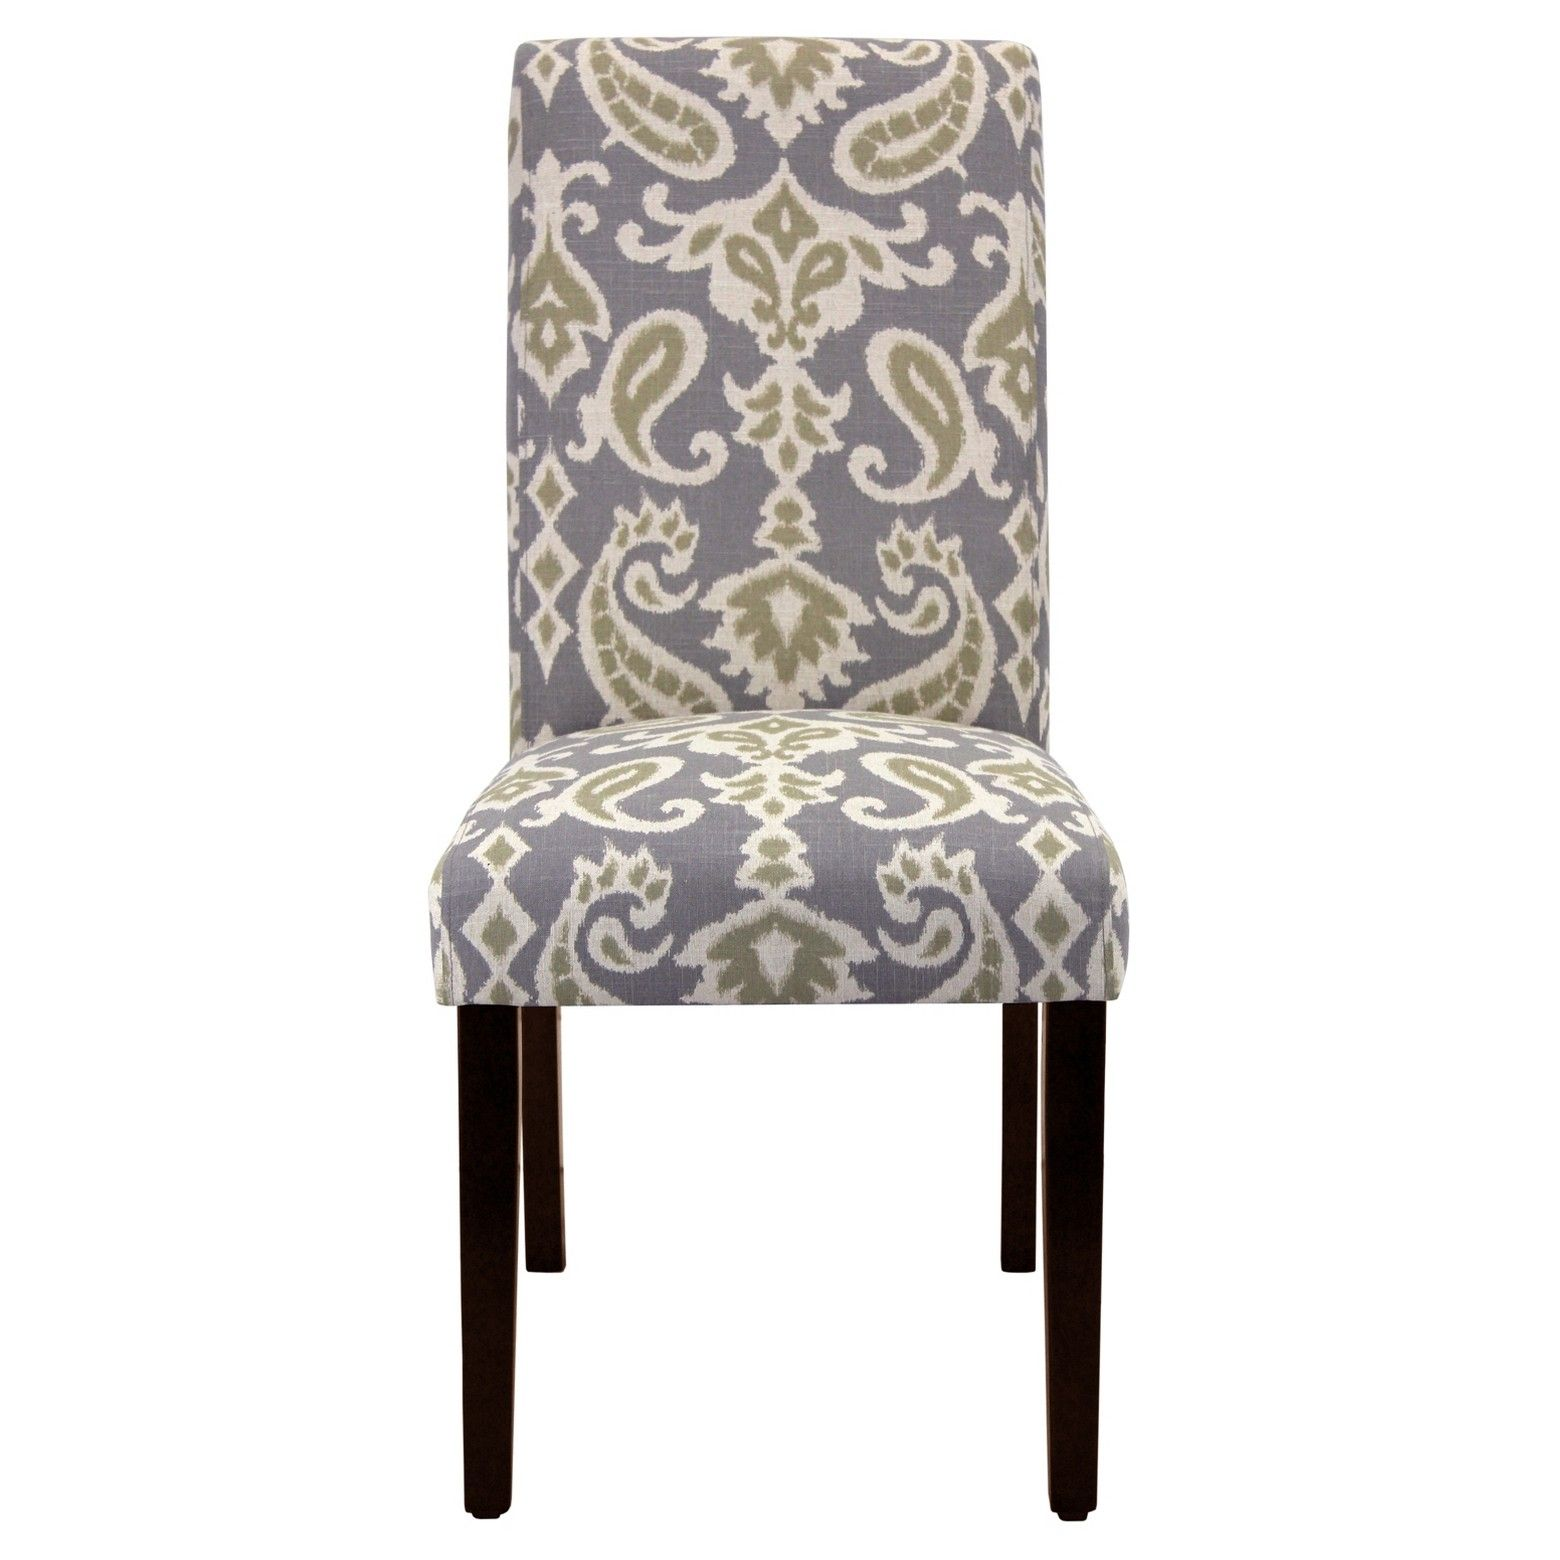 Miraculous Give Your Dining Or Living Area A Touch Of Comfortable Forskolin Free Trial Chair Design Images Forskolin Free Trialorg